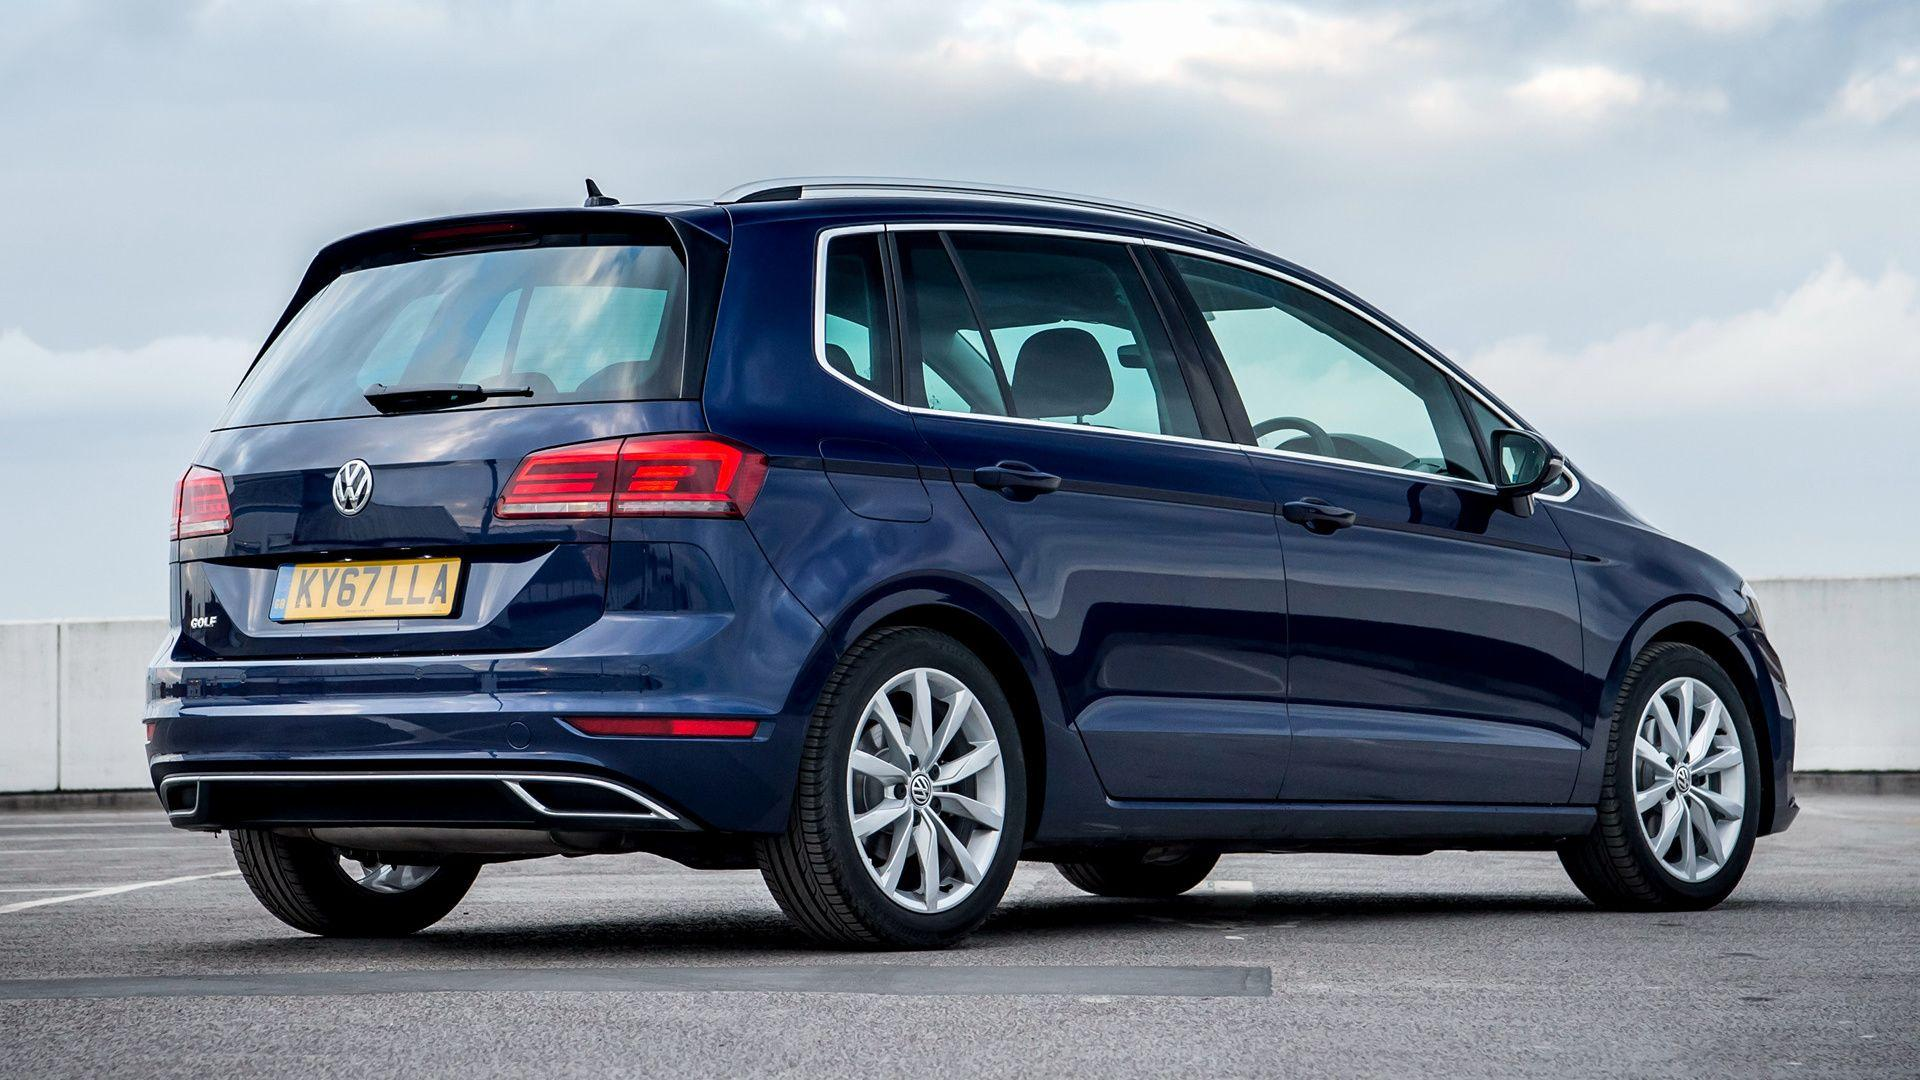 Volkswagen Golf SV (2018) UK Wallpapers and HD Images - Car Pixel